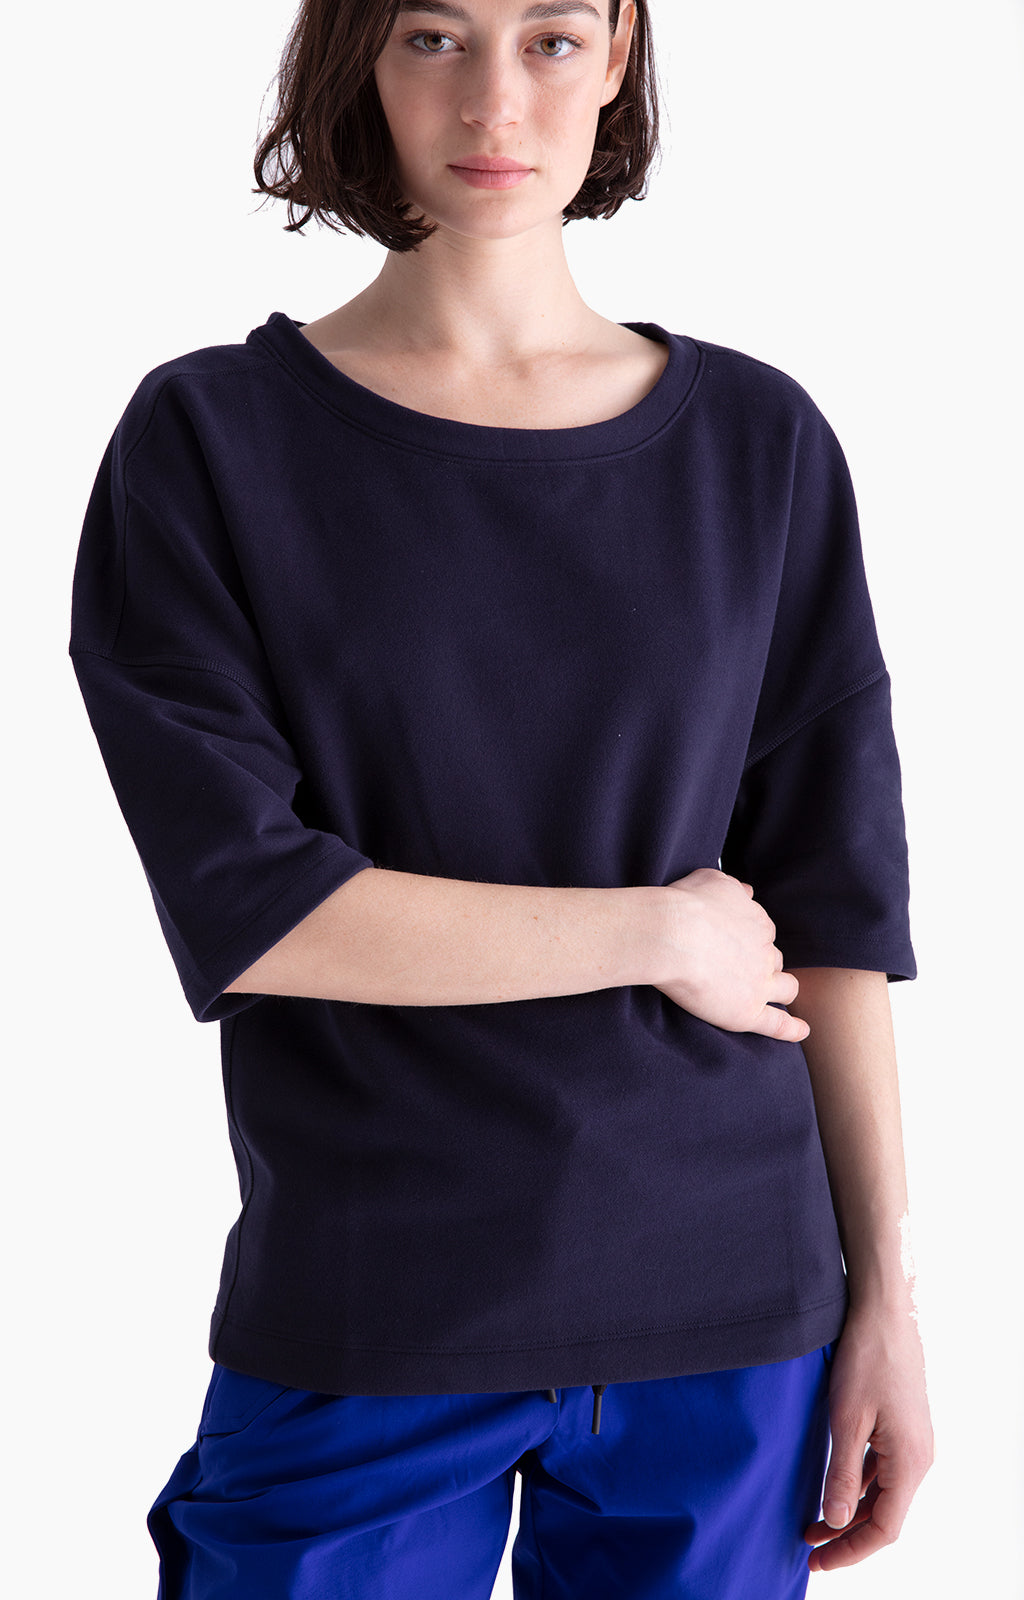 Integrity - Slouchy Insanely Comfy Sweatshirt in Navy